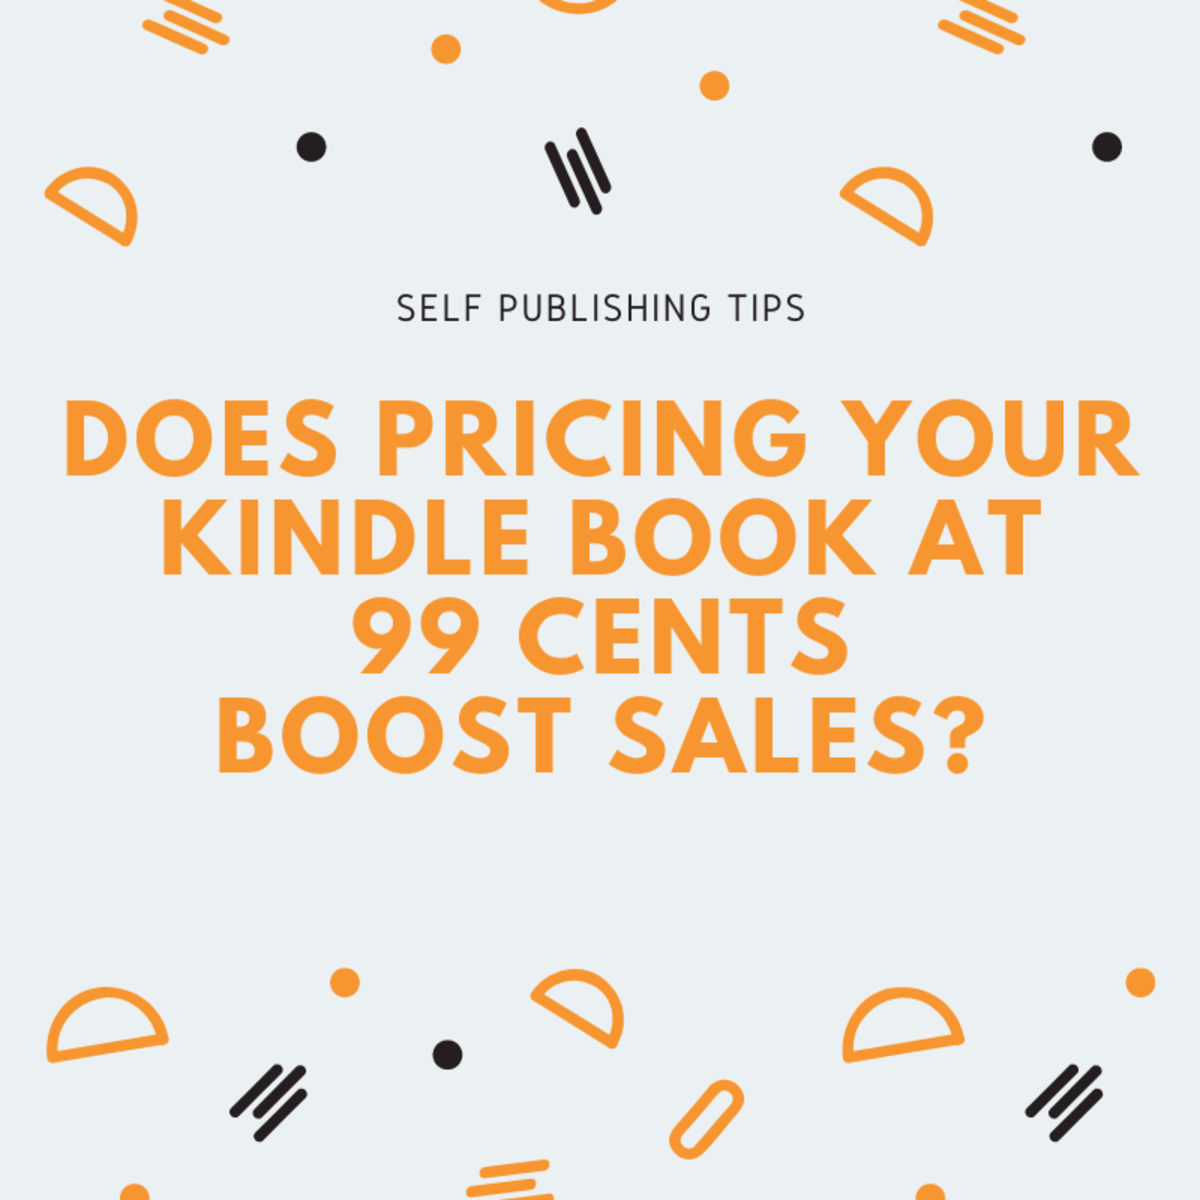 Does Pricing Your Kindle Book at 99 Cents Boost Sales?